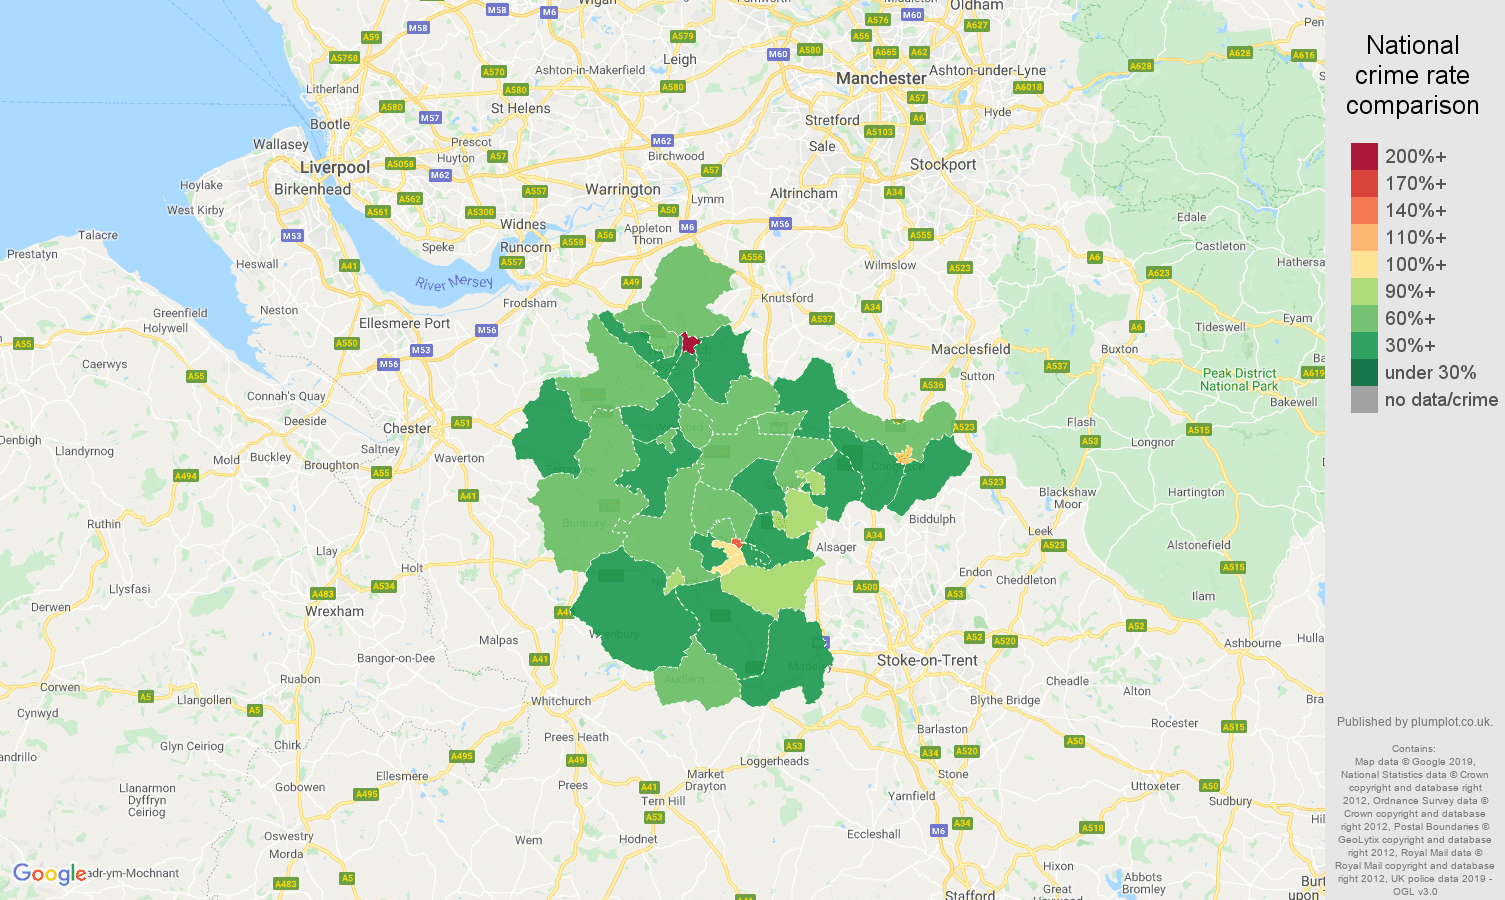 Crewe other theft crime rate comparison map